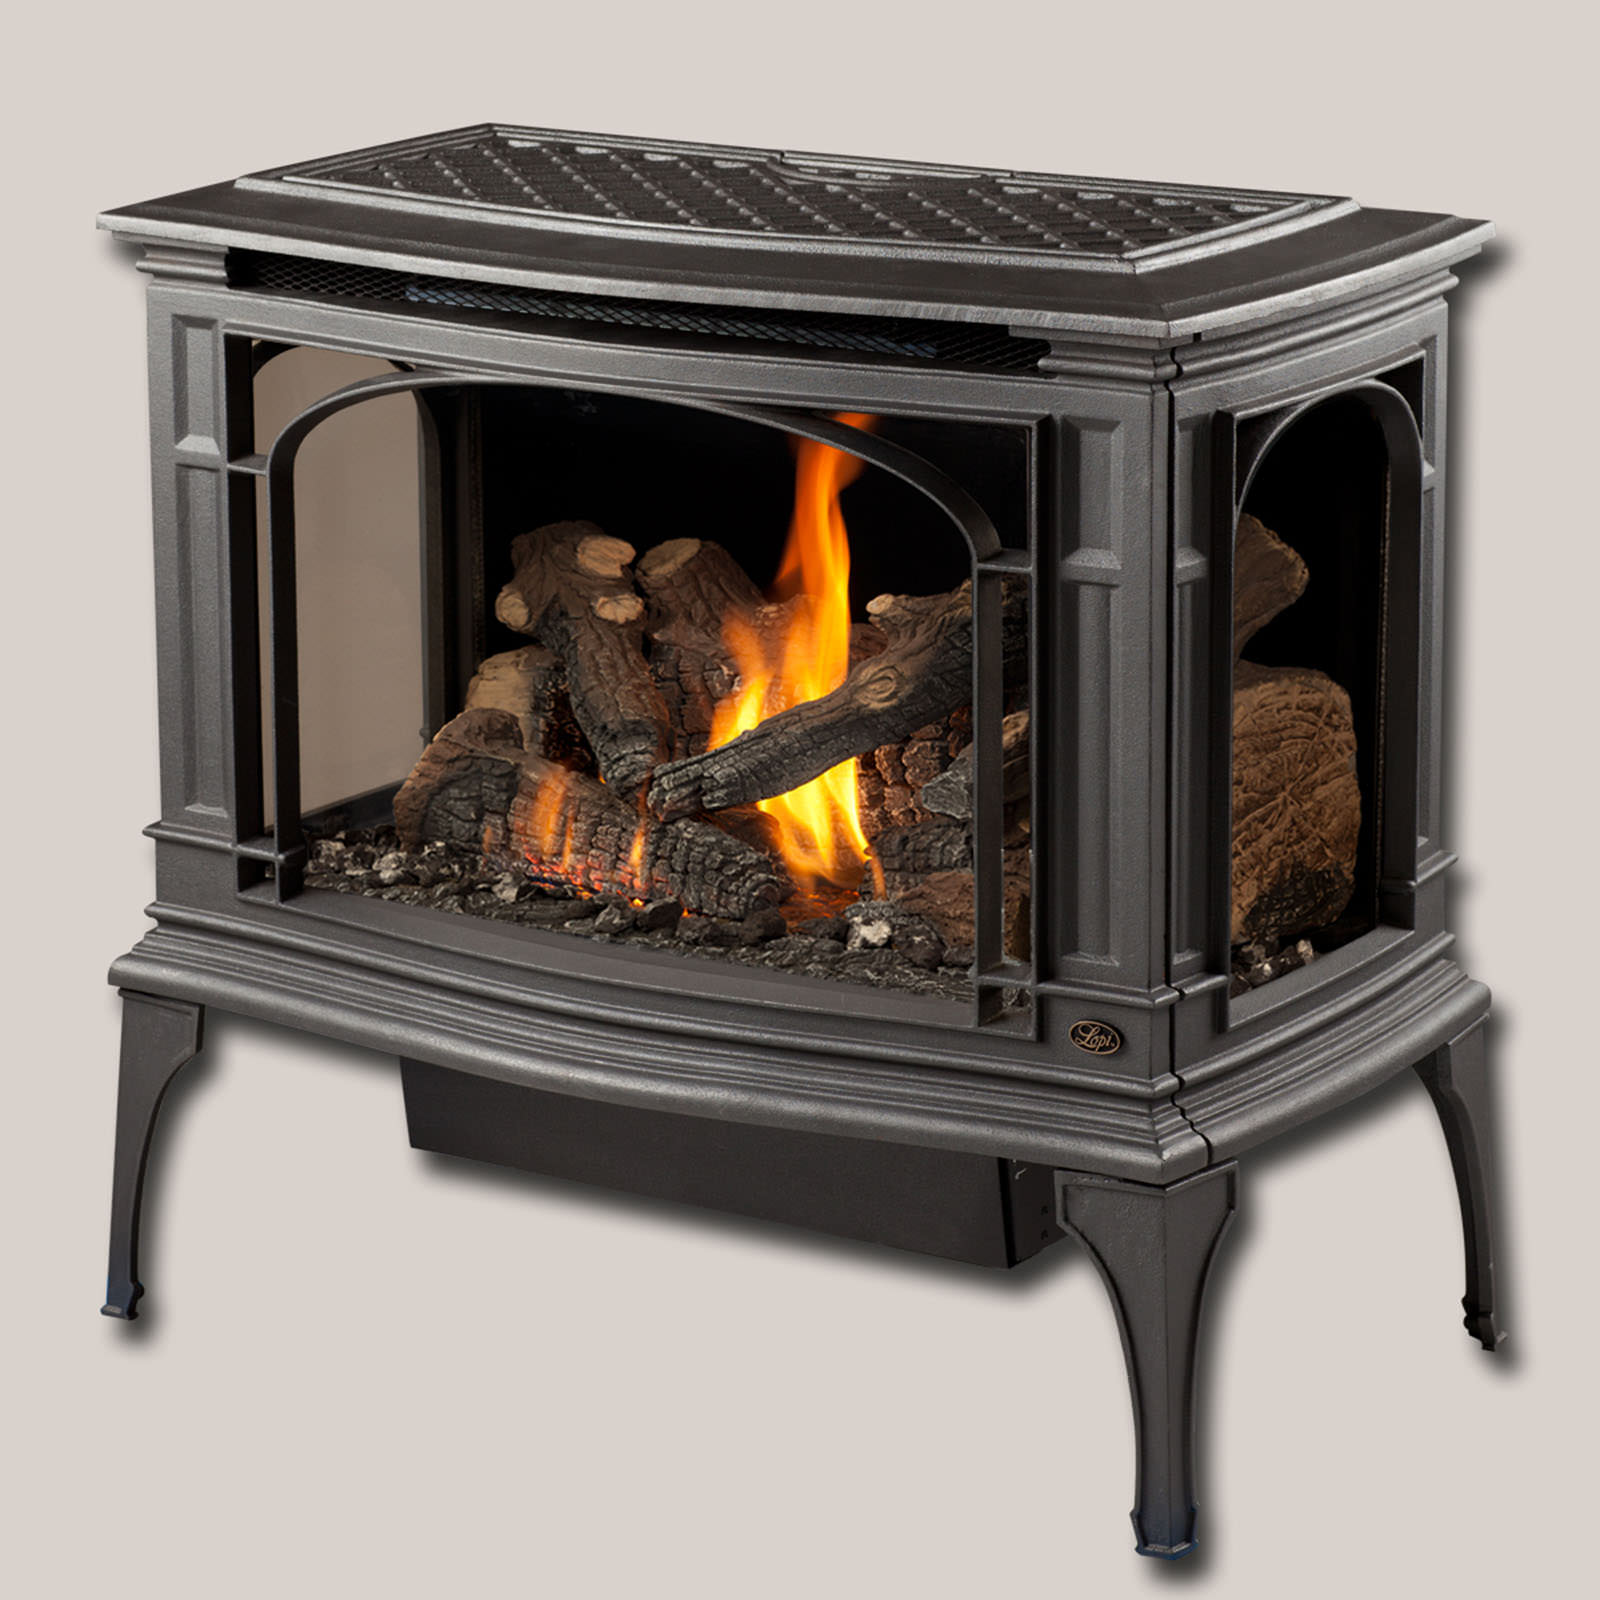 The Lopi Greenfield Gas Stove is Lopi